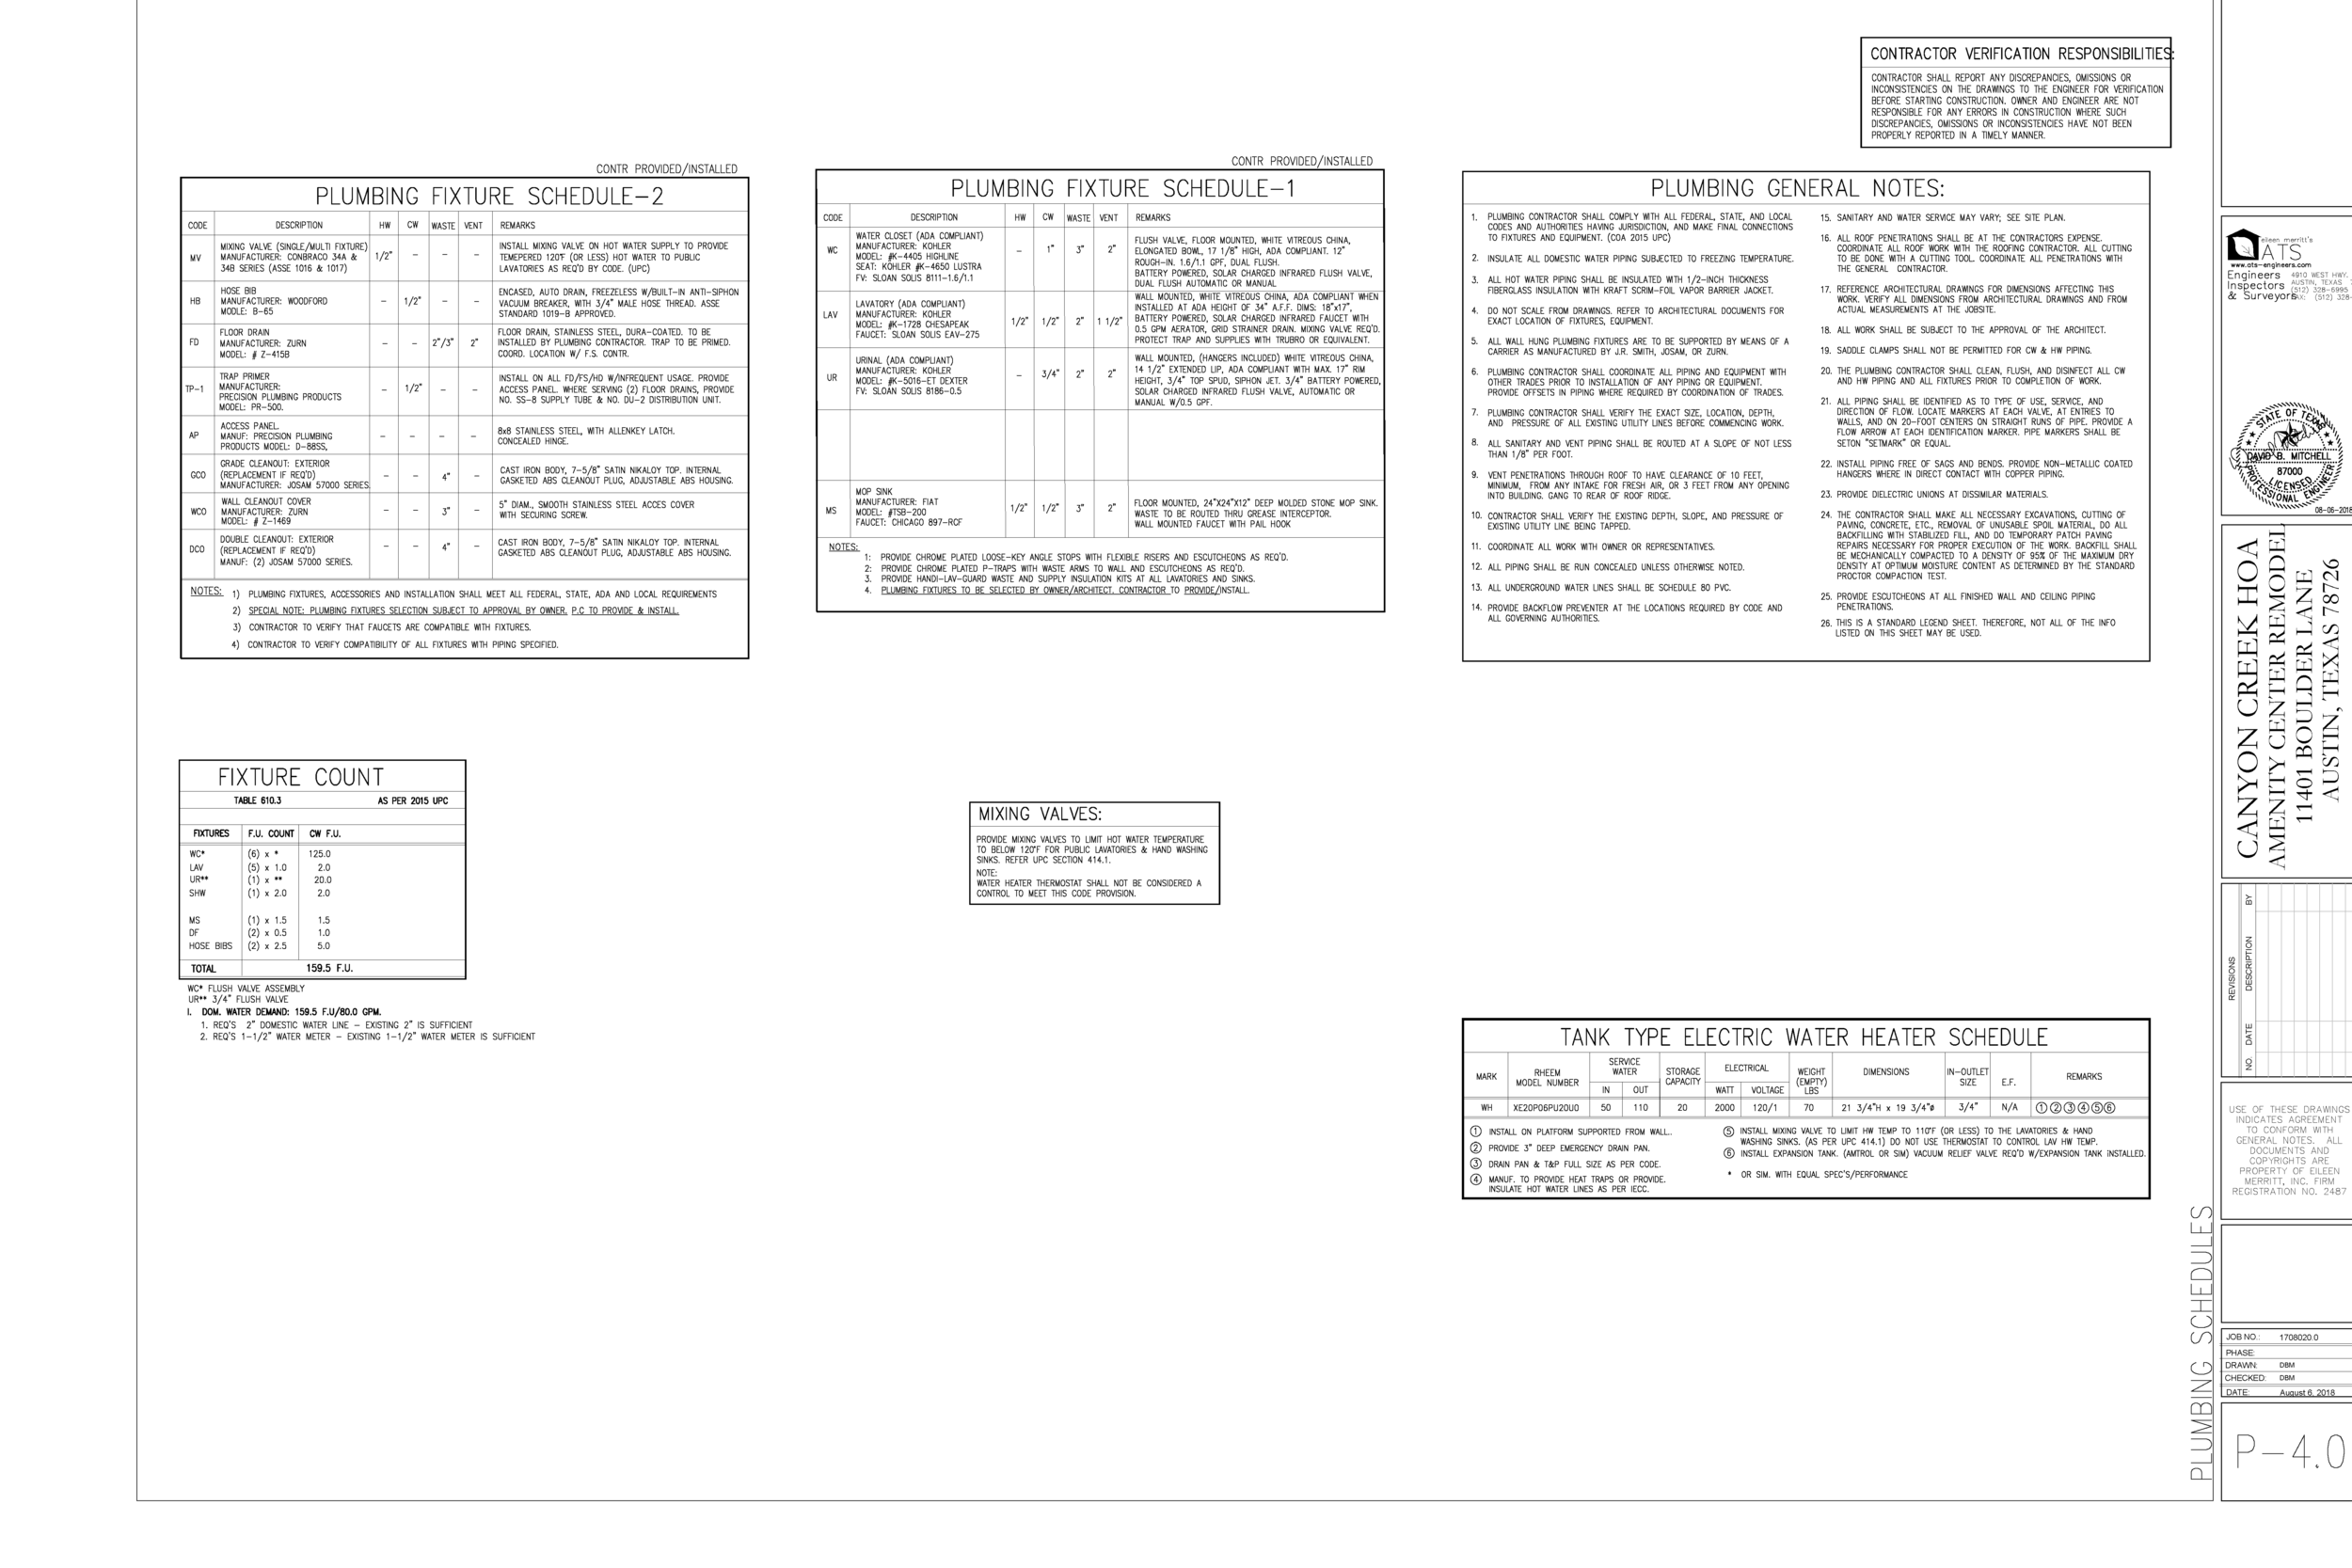 2018-08-06 (Draw 3) 11401 CANYON CREEK - MEP - V.2 PERMIT_Page_04.png